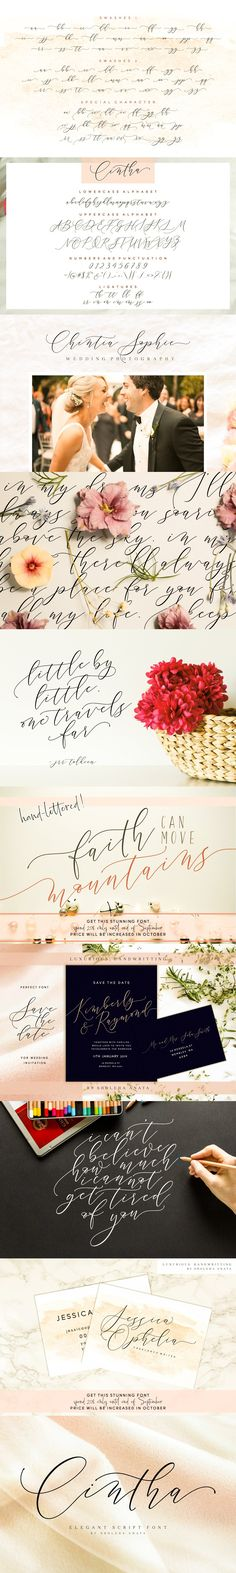 This font was made inspired by the requests of my friends who asked me to make their wedding invitation in the wedding one day. Cintha is a modern calligraphy Calligraphy Fonts, Modern Calligraphy, Lettering, Elegant Fonts, International Symbols, Uppercase And Lowercase Letters, Types Of Printing, Have A Beautiful Day, Cool Fonts